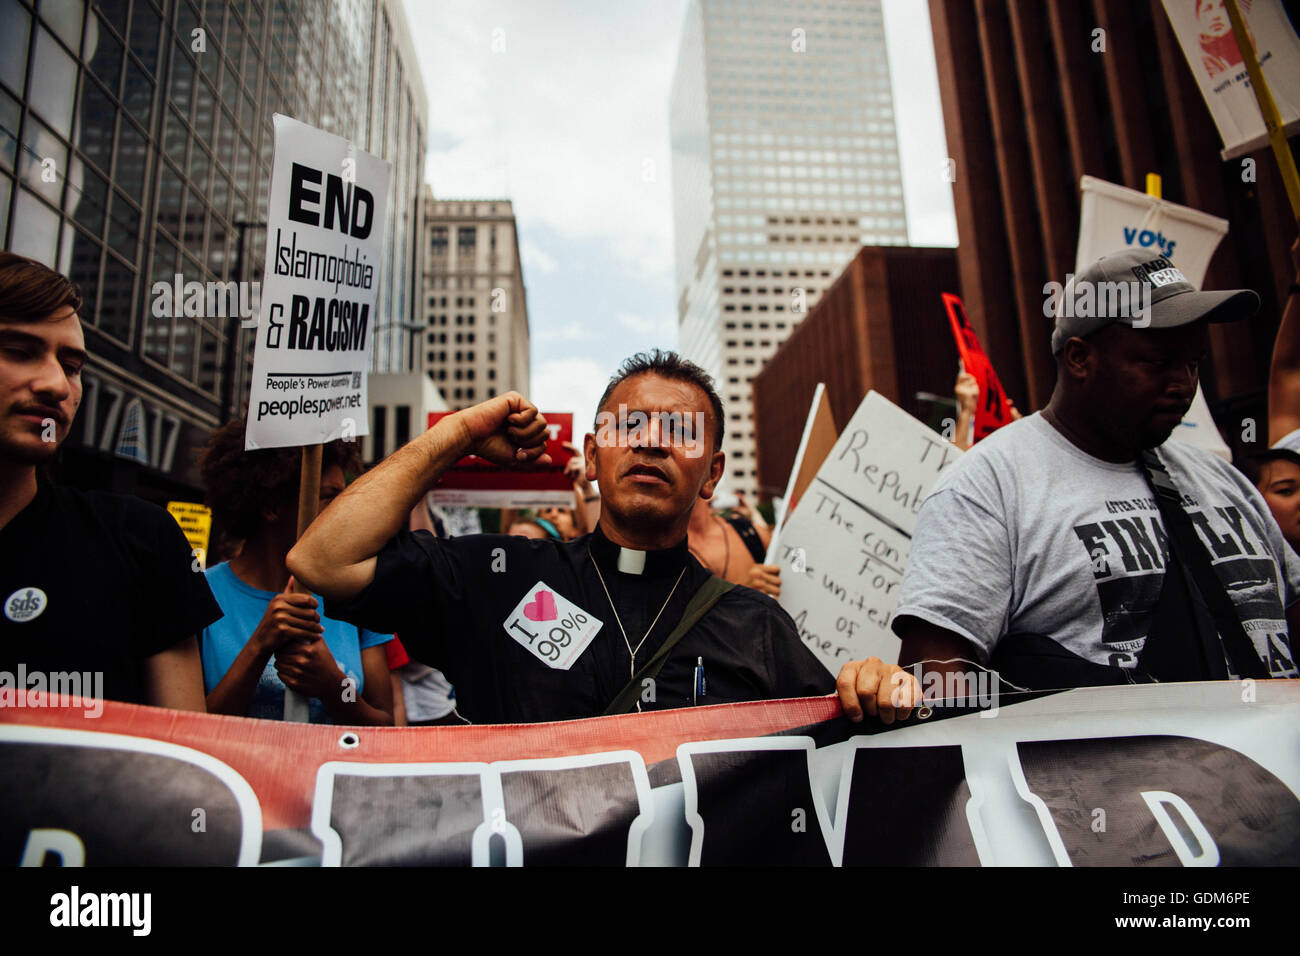 Cleveland, Ohio, USA. 18th July, 2016. A Catholic priest is seen during a anti Trump Rally in Cleveland, Ohio July, - Stock Image